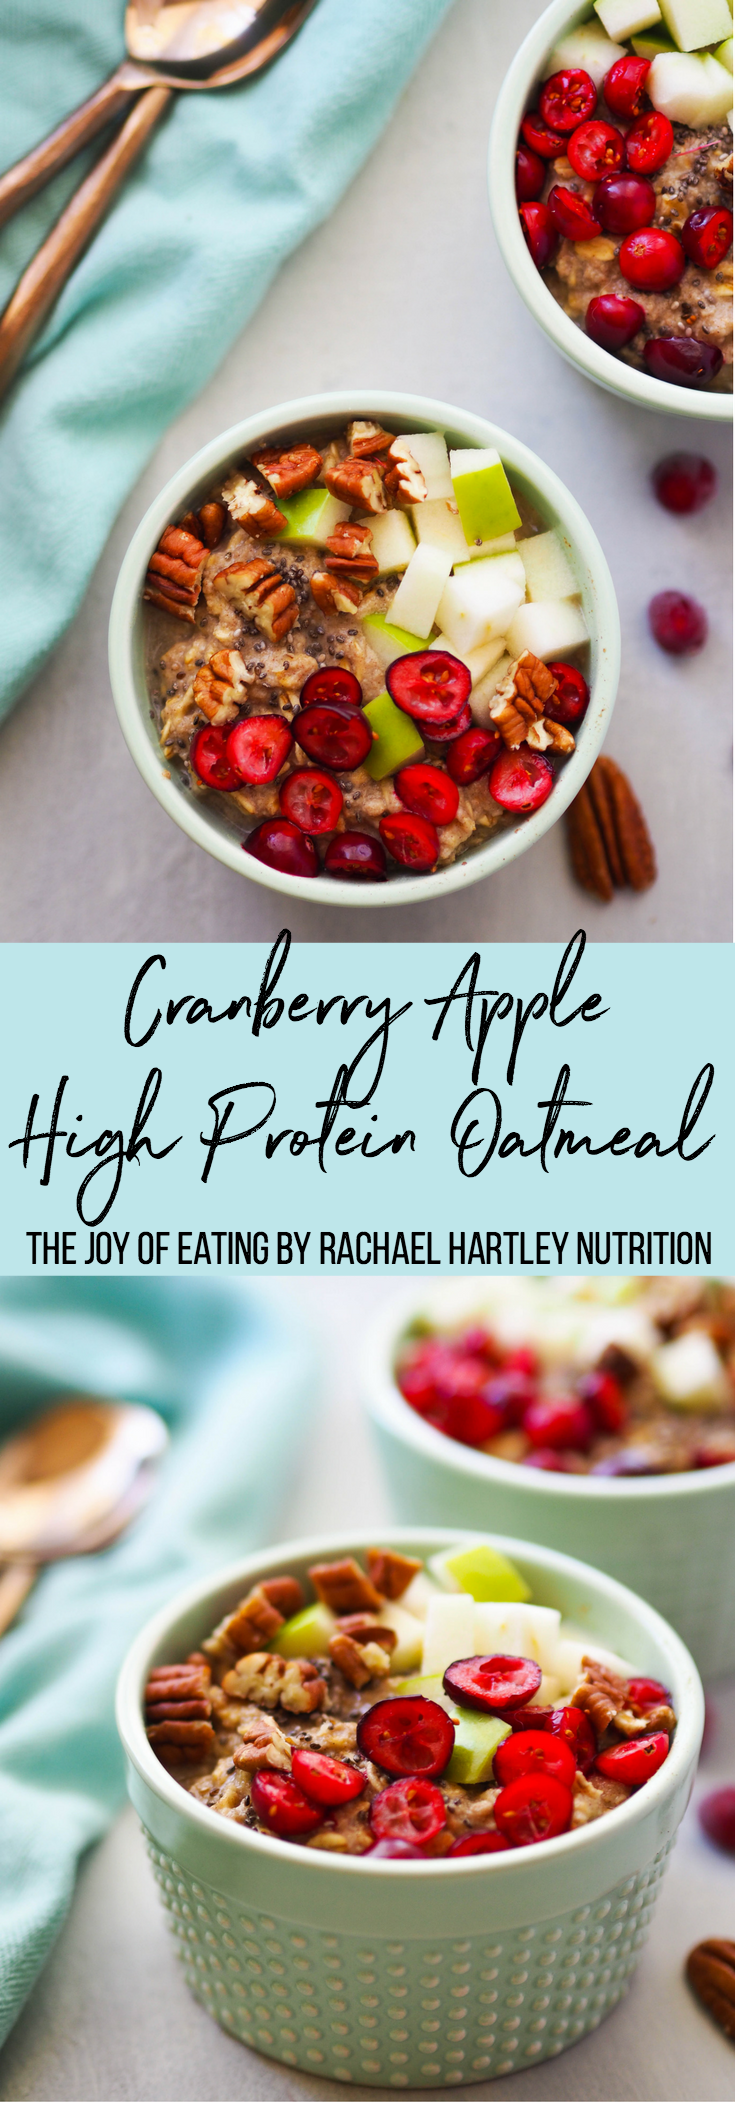 Cranberry Apple High Protein Oatmeal